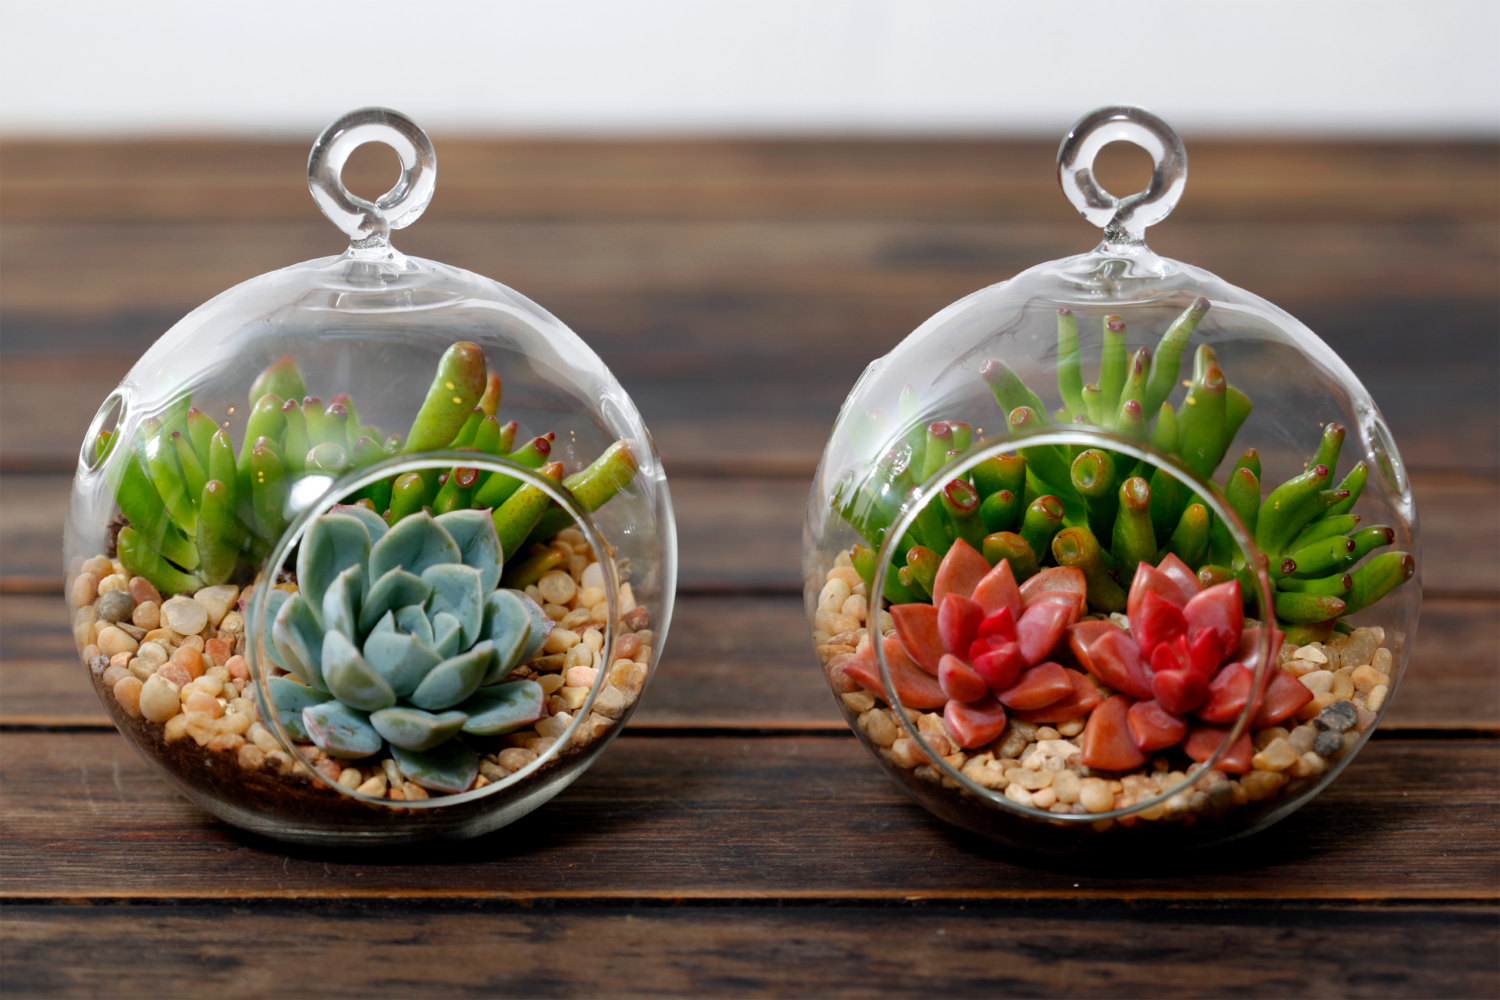 Let's Make DIY Terrarium